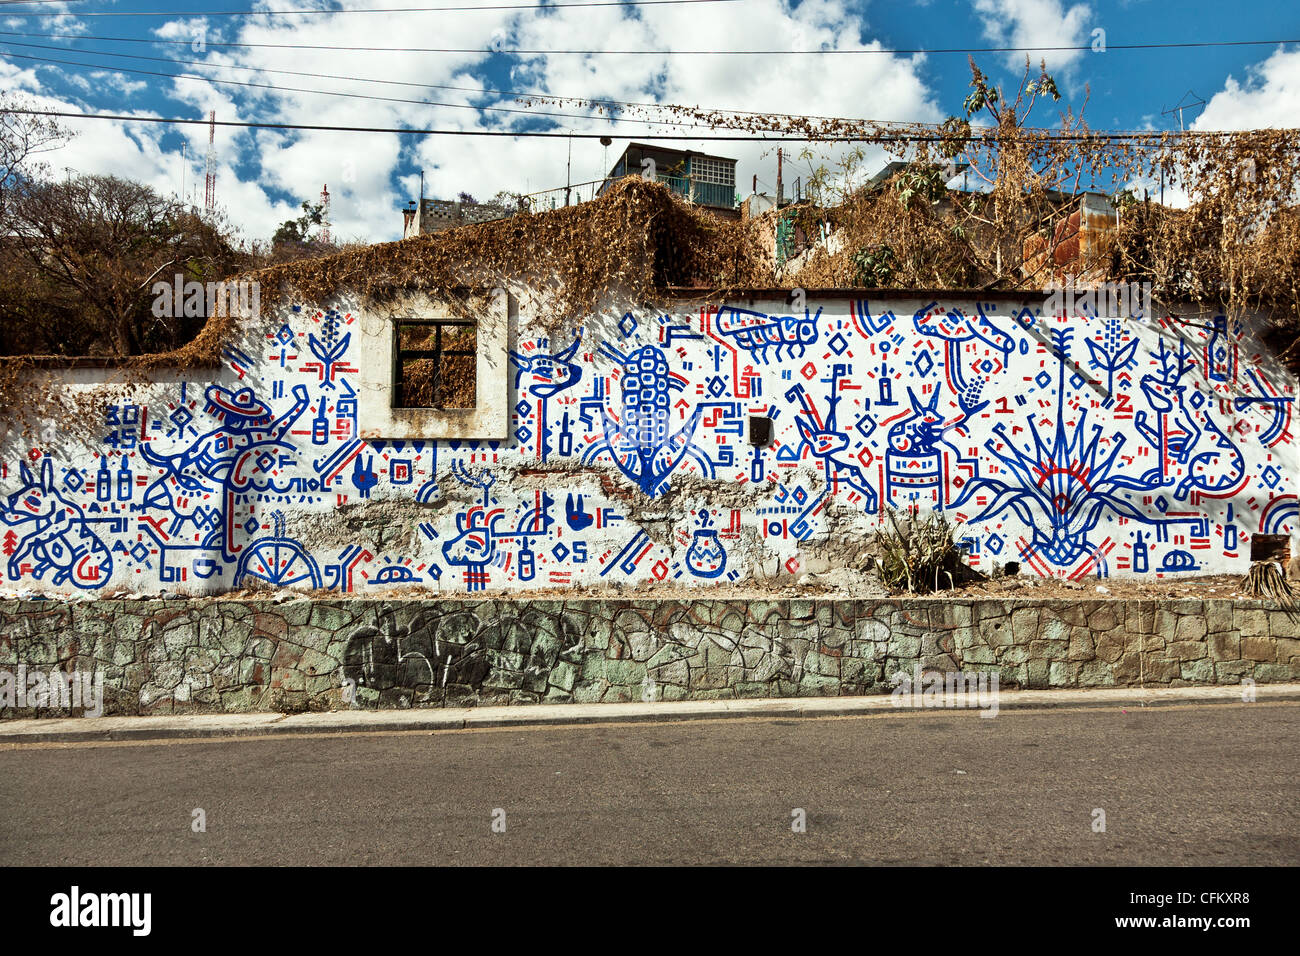 exterior wall of ruined roofless house covered with curious glyph like red white & blue geometric decorative - Stock Image